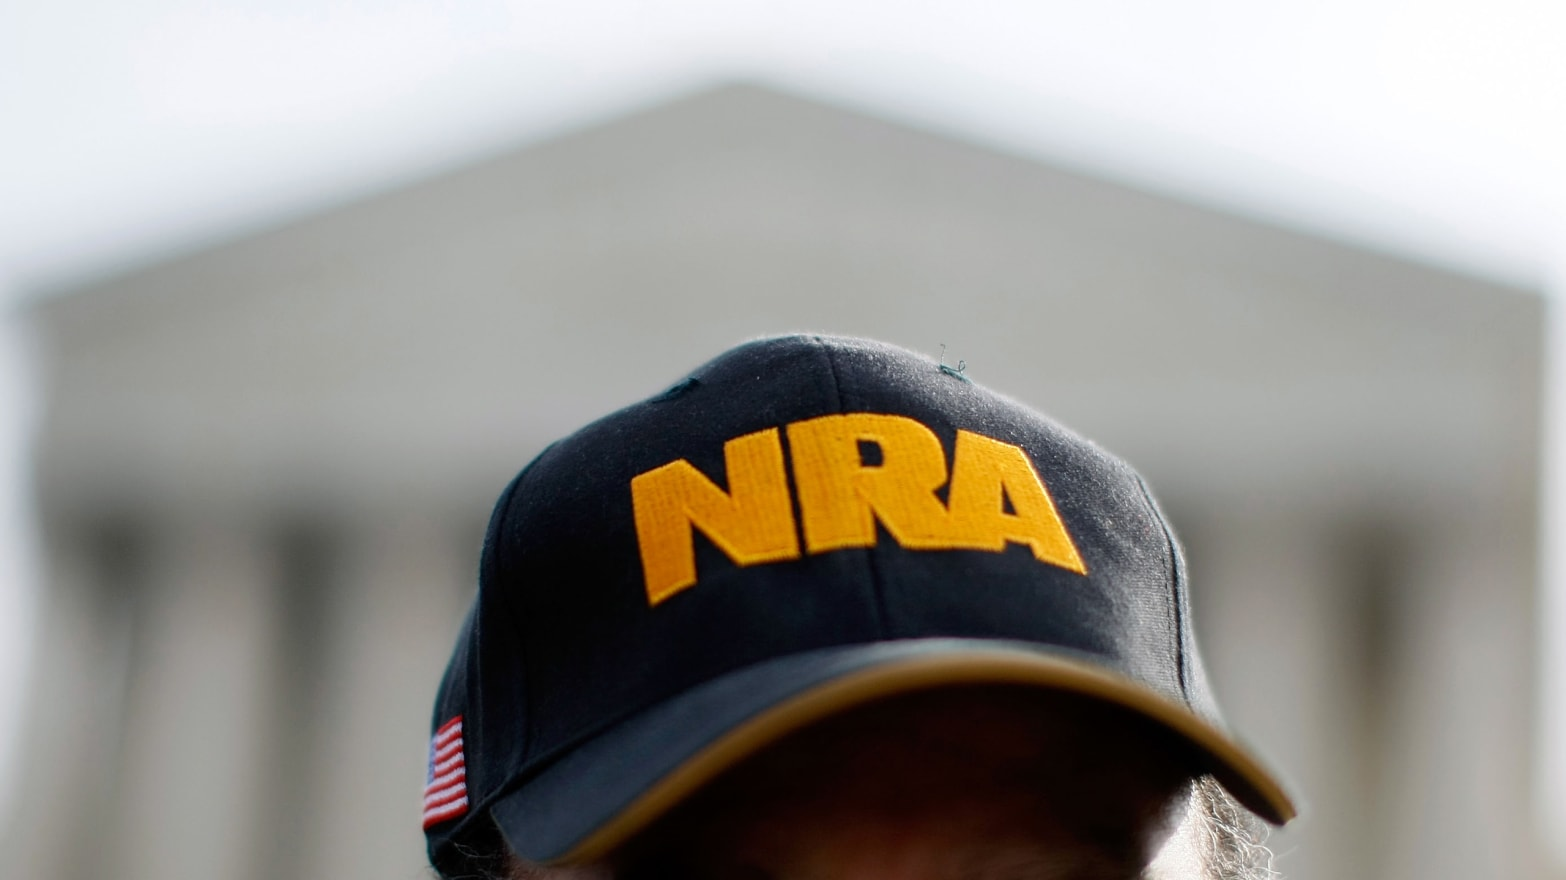 At the Supreme Court, the NRA Finally Loses One